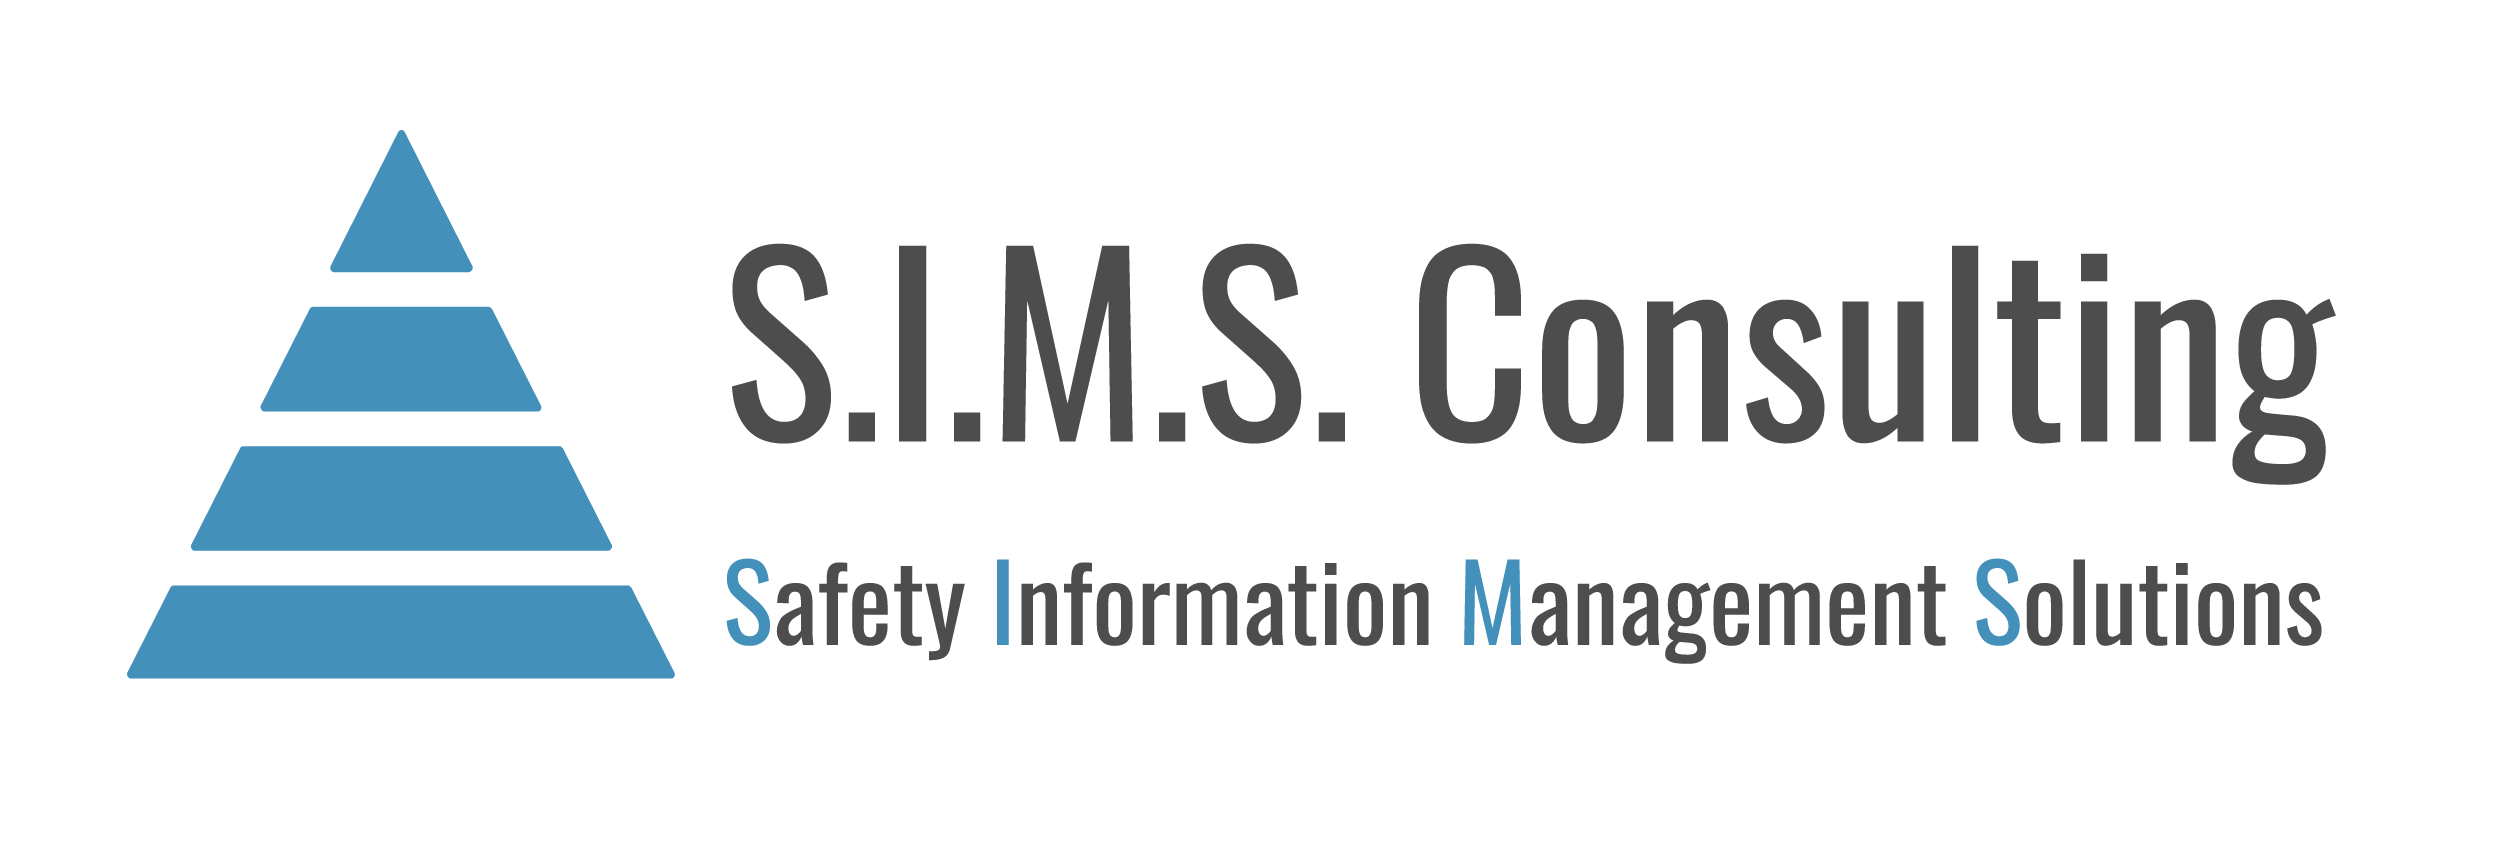 S.I.M.S. Consulting